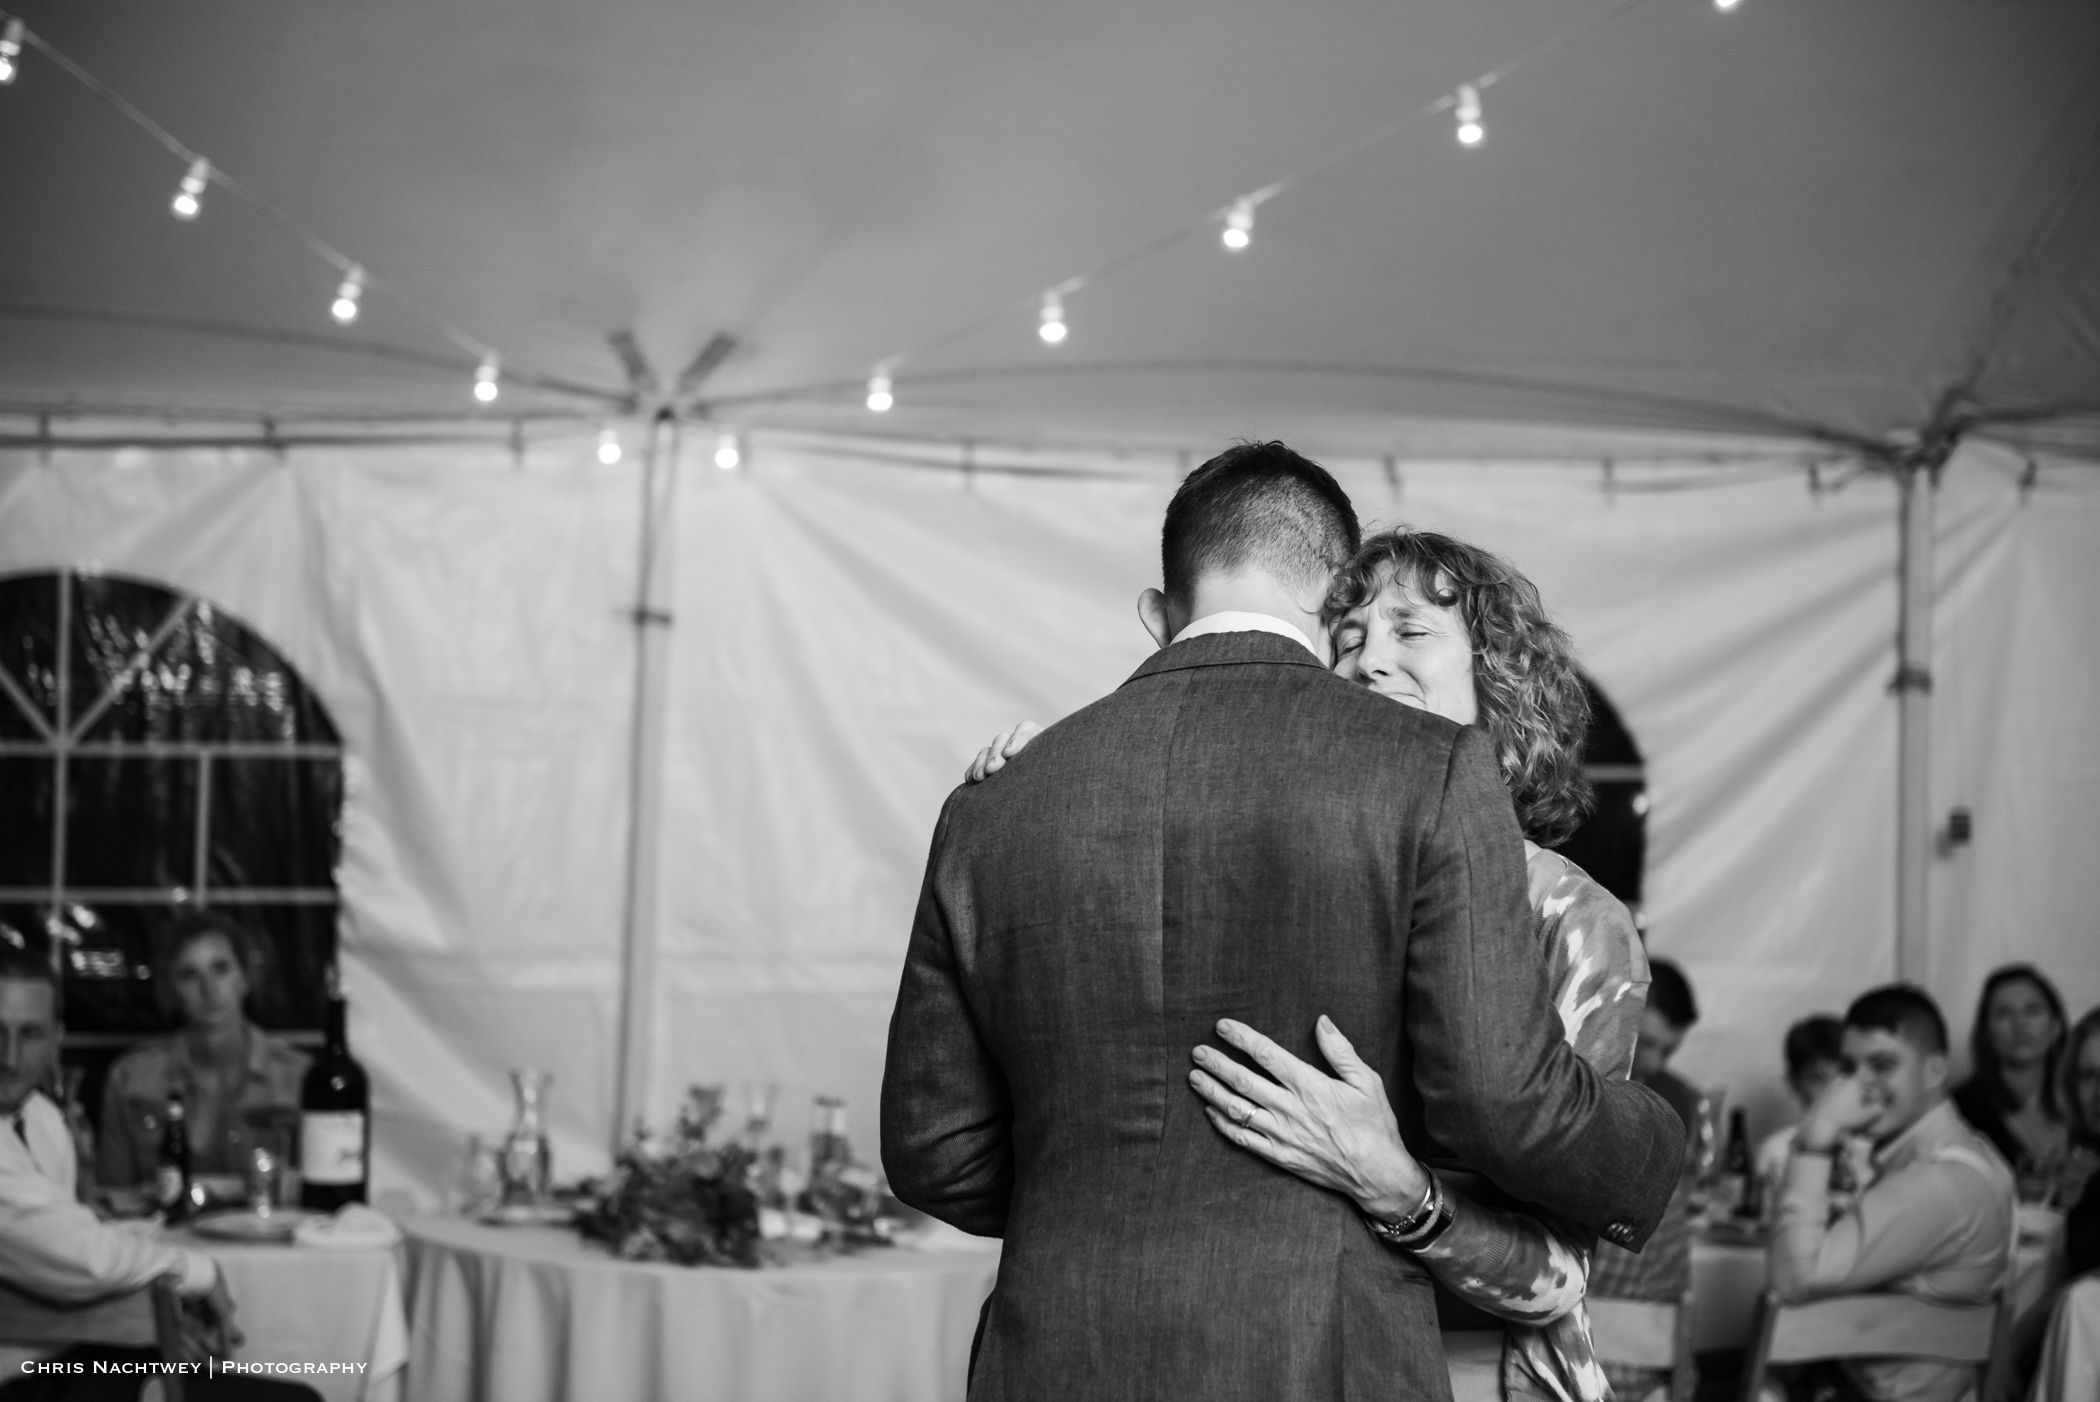 artistic-wedding-photographer-granby-connecticut-chris-nachtwey-photography-2018-45.jpg